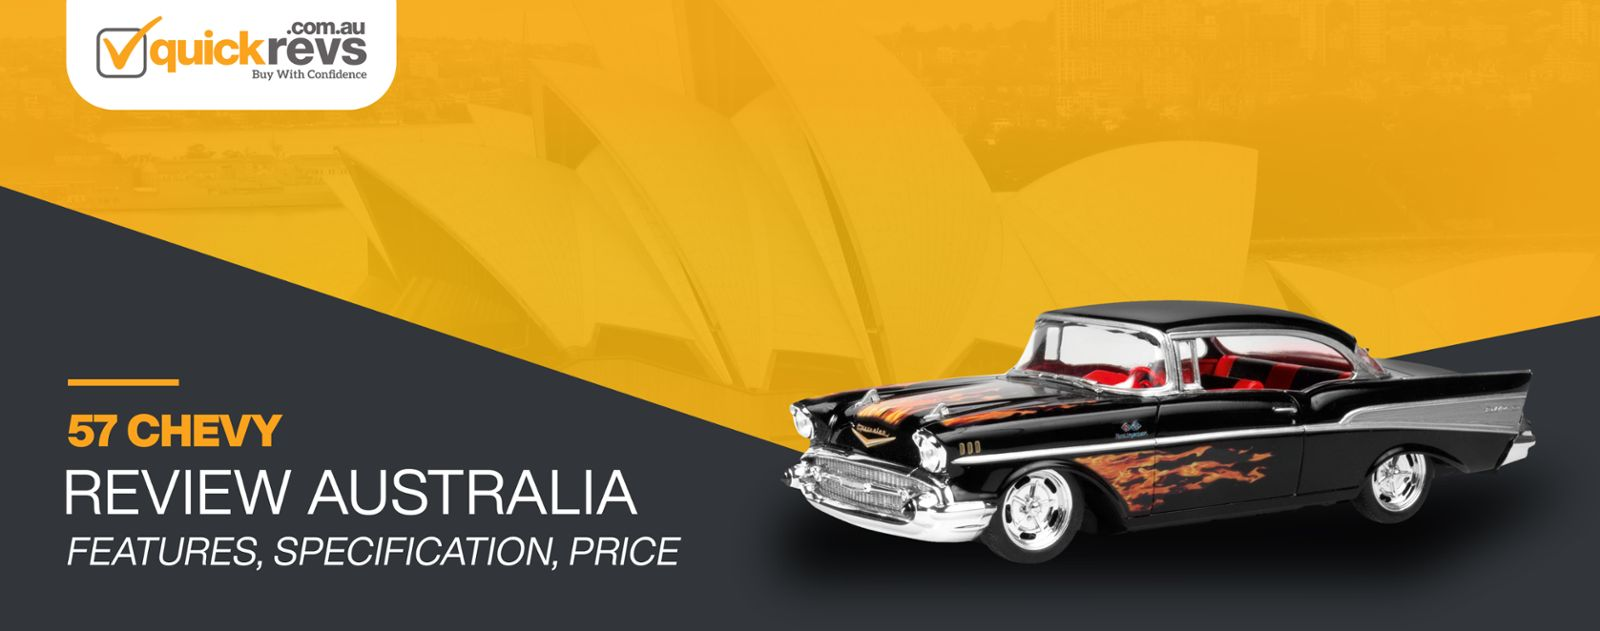 57 Chevy Review Australia | Features, Specification, Price